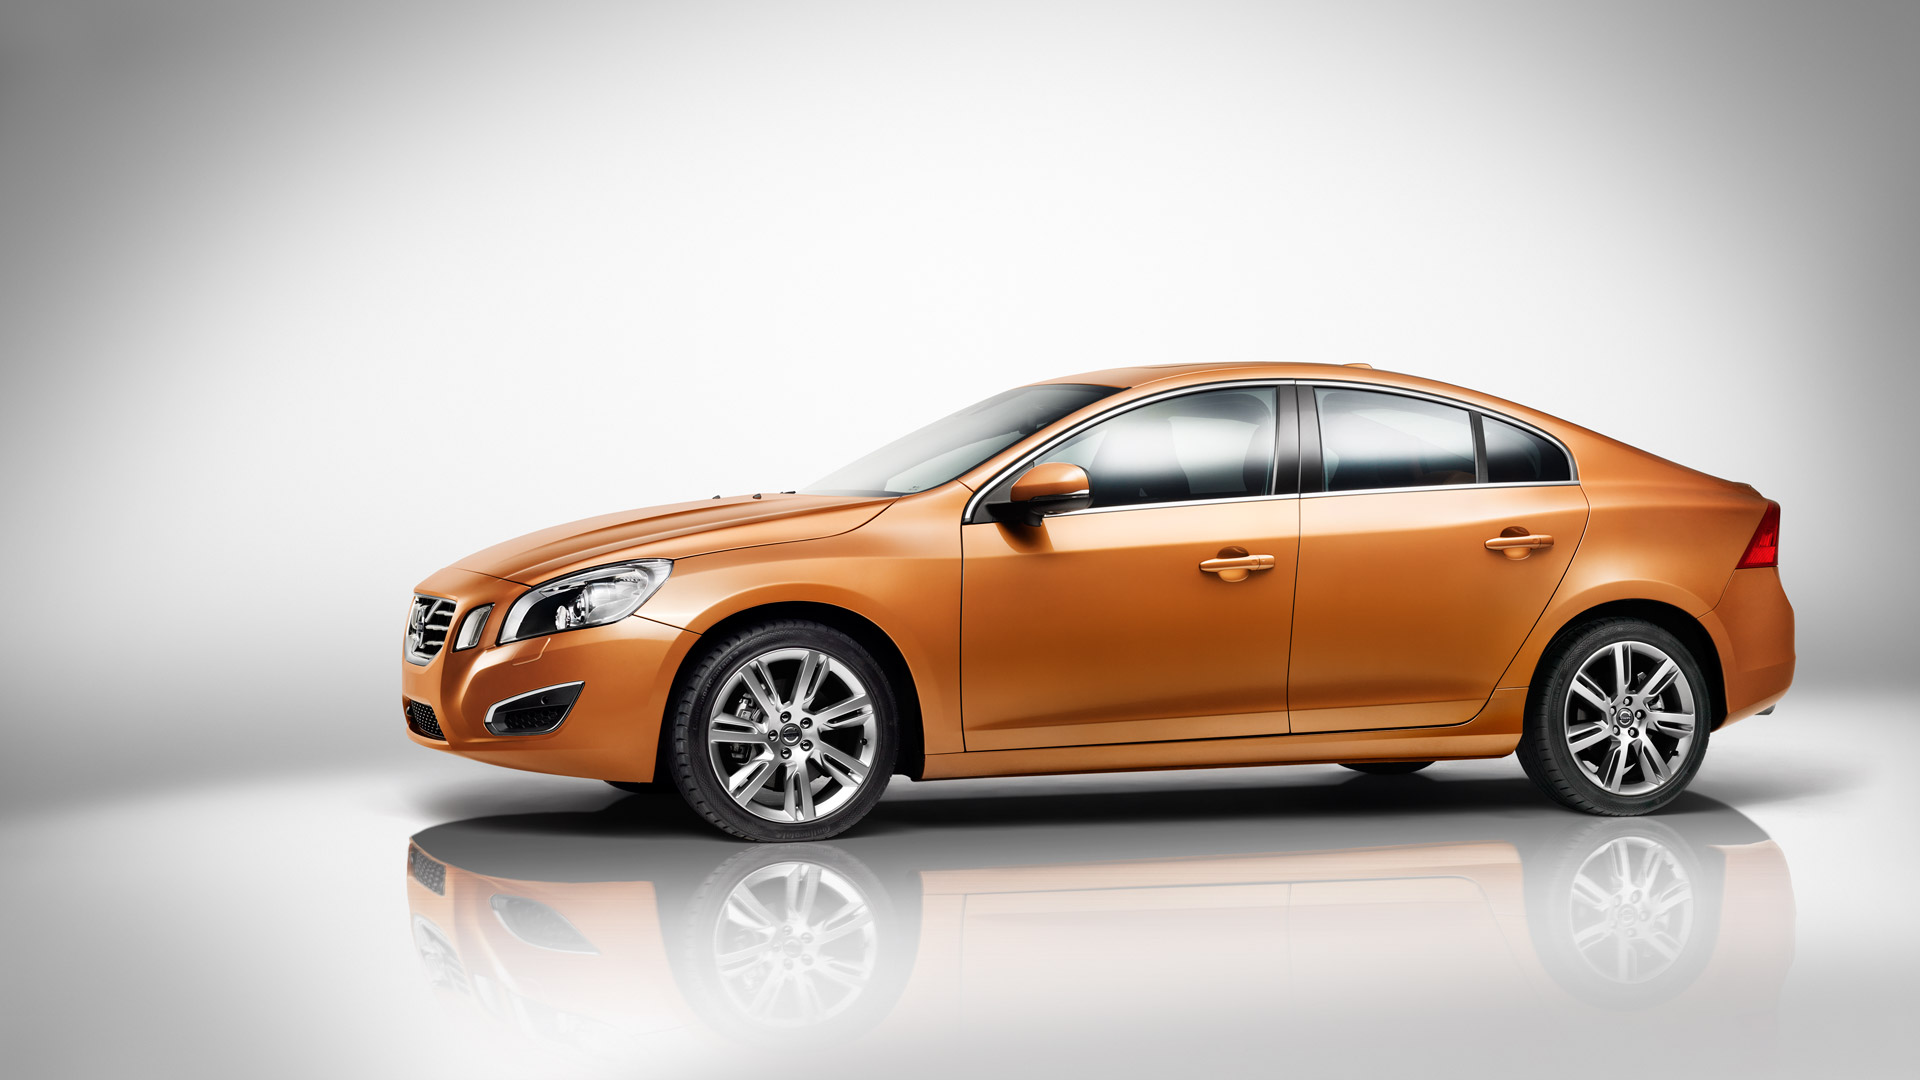 Toyota Of Orange >> Holubowicz Postproduction Studio - Volvo orange